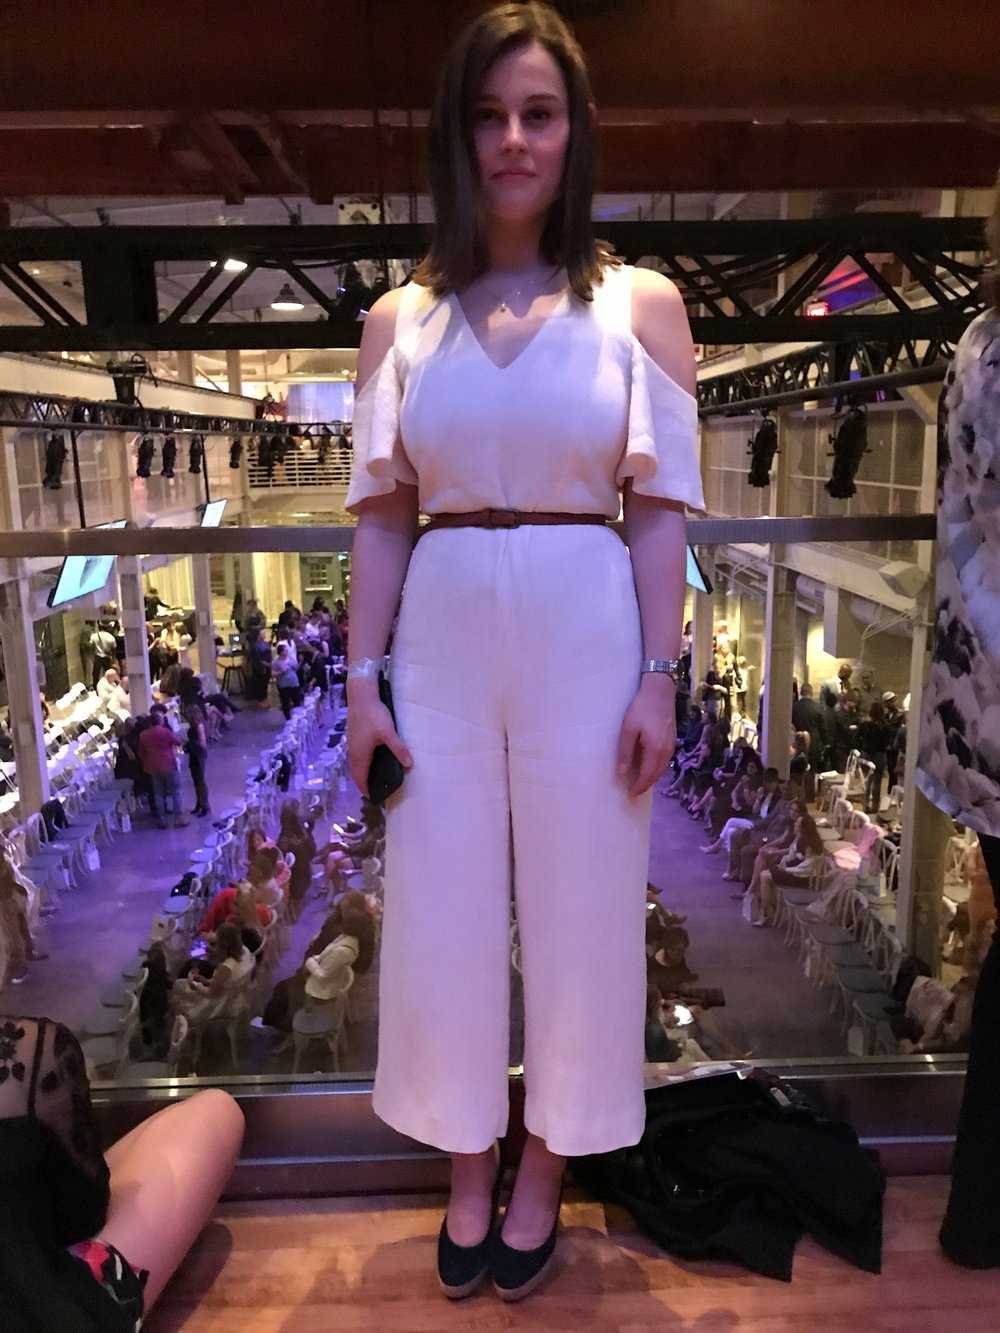 The nude jumpsuit in question